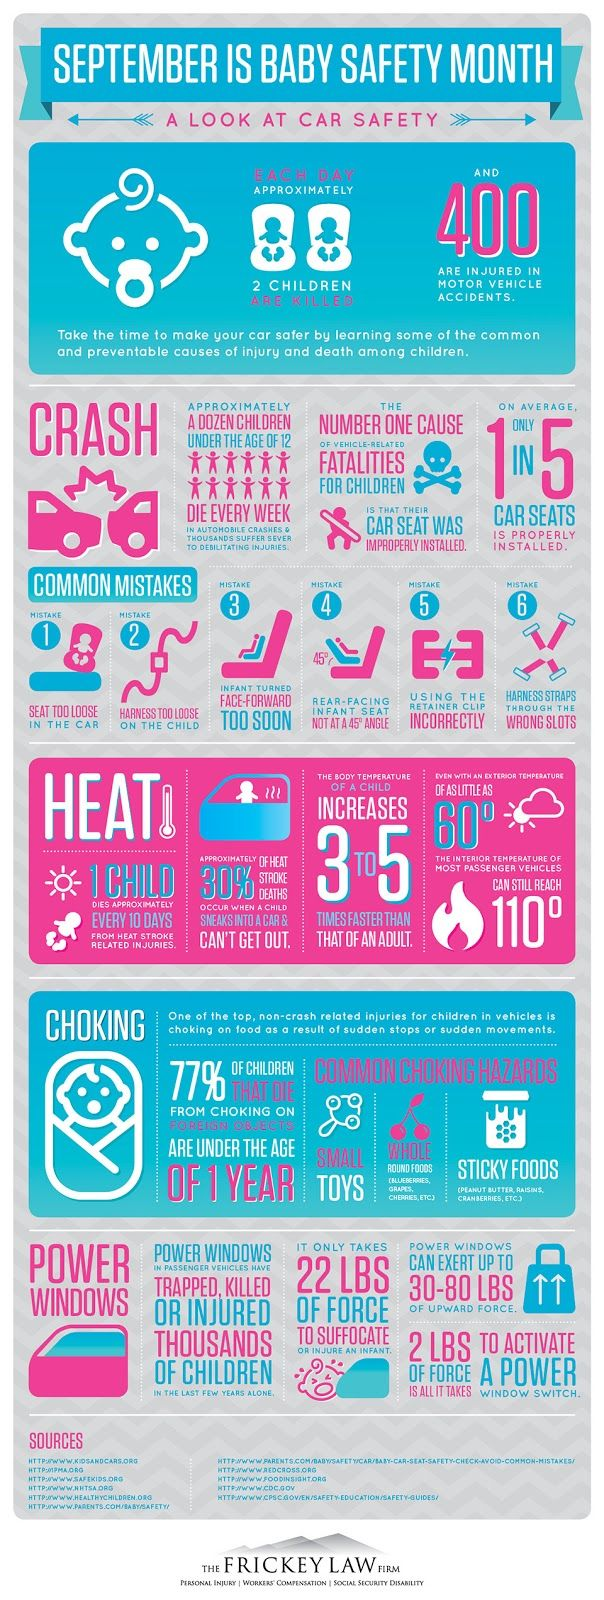 Baby Safety Month - A Look At Car Safety